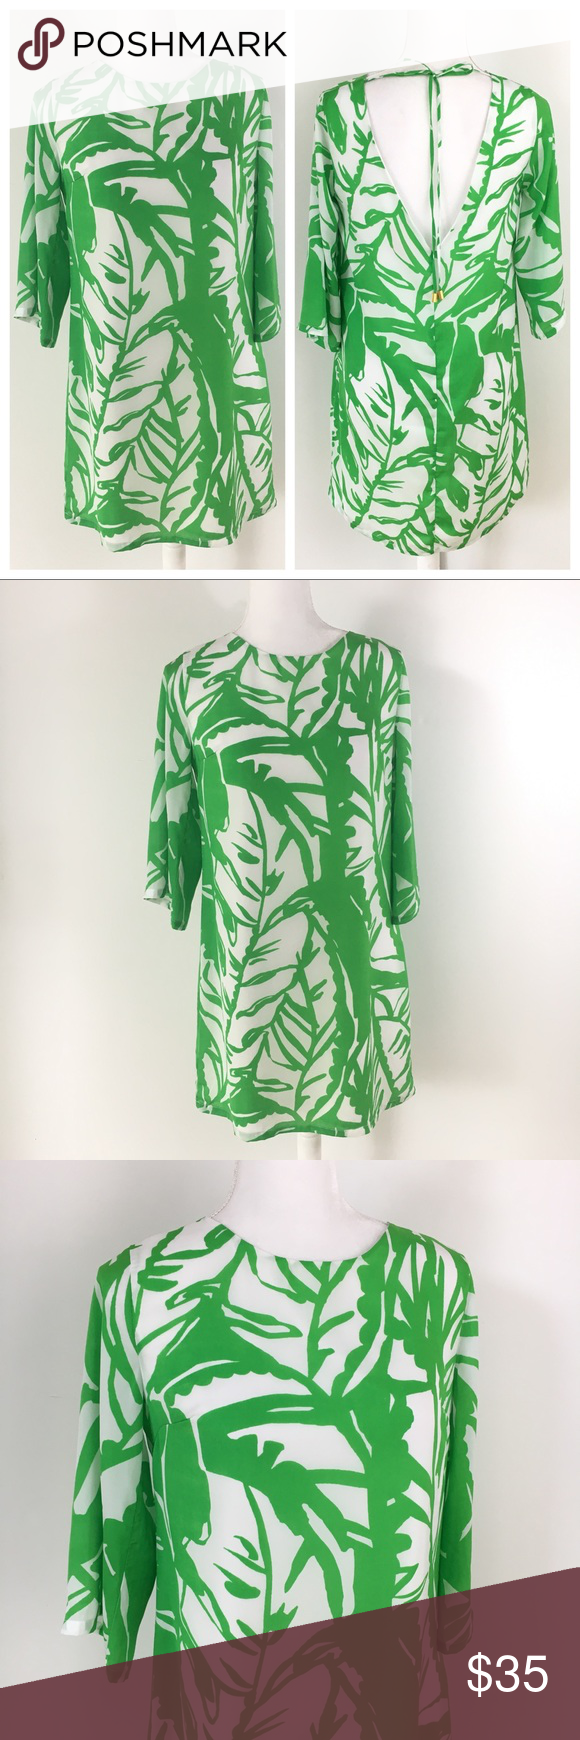 Lilly Pulitzer Target Green White Palm Shift Dress Lilly Pulitzer Target Dresses Printed Shift Dress [ 1740 x 580 Pixel ]